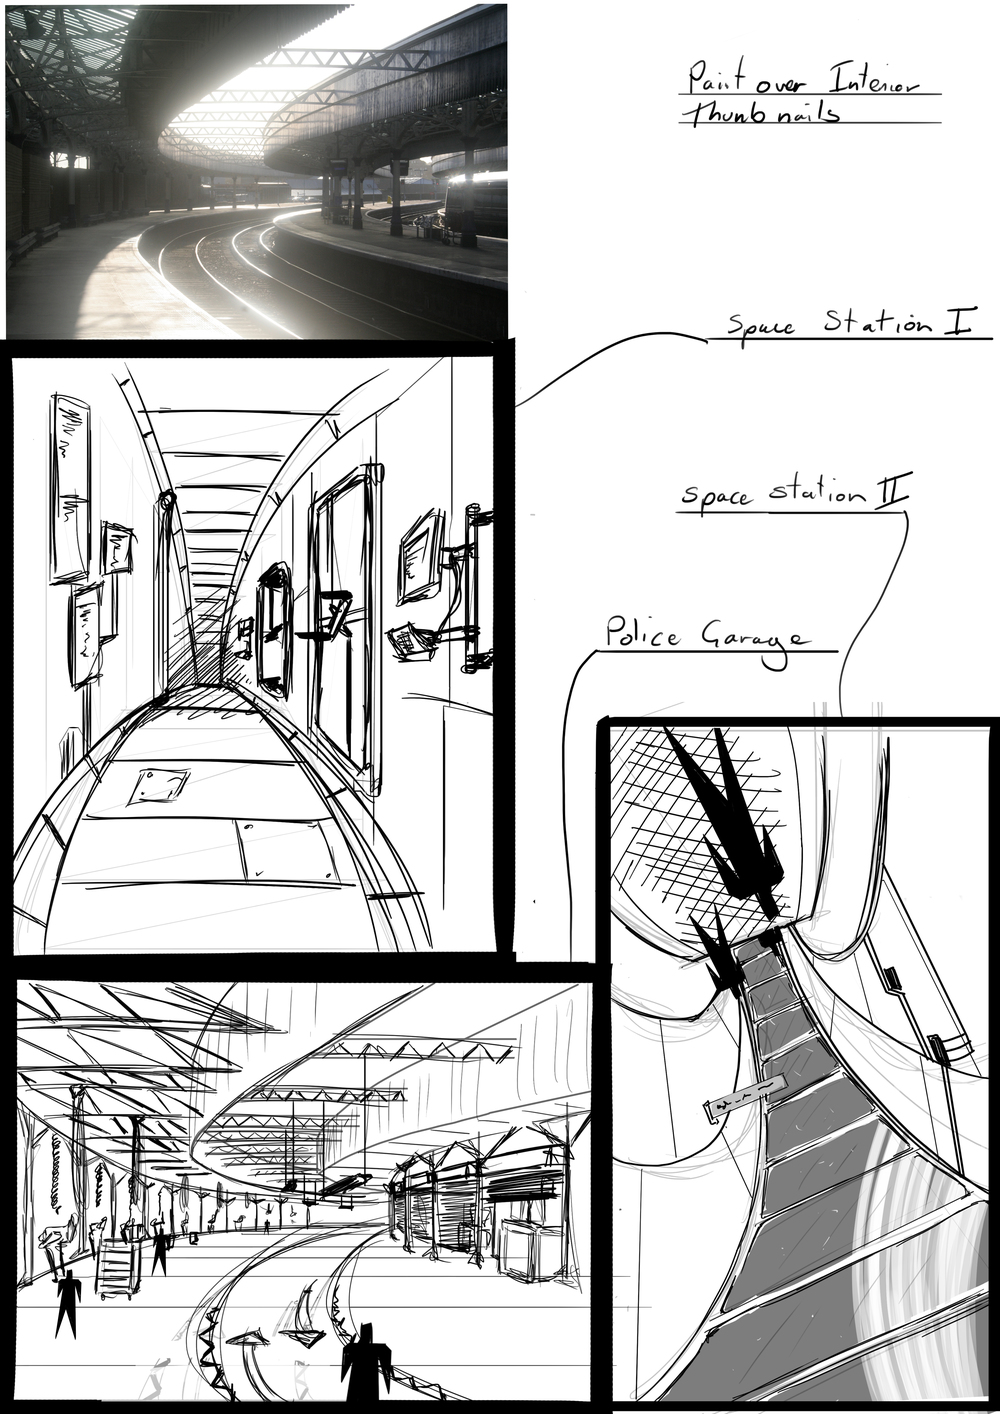 Some rough thumbnails for an internal environment.